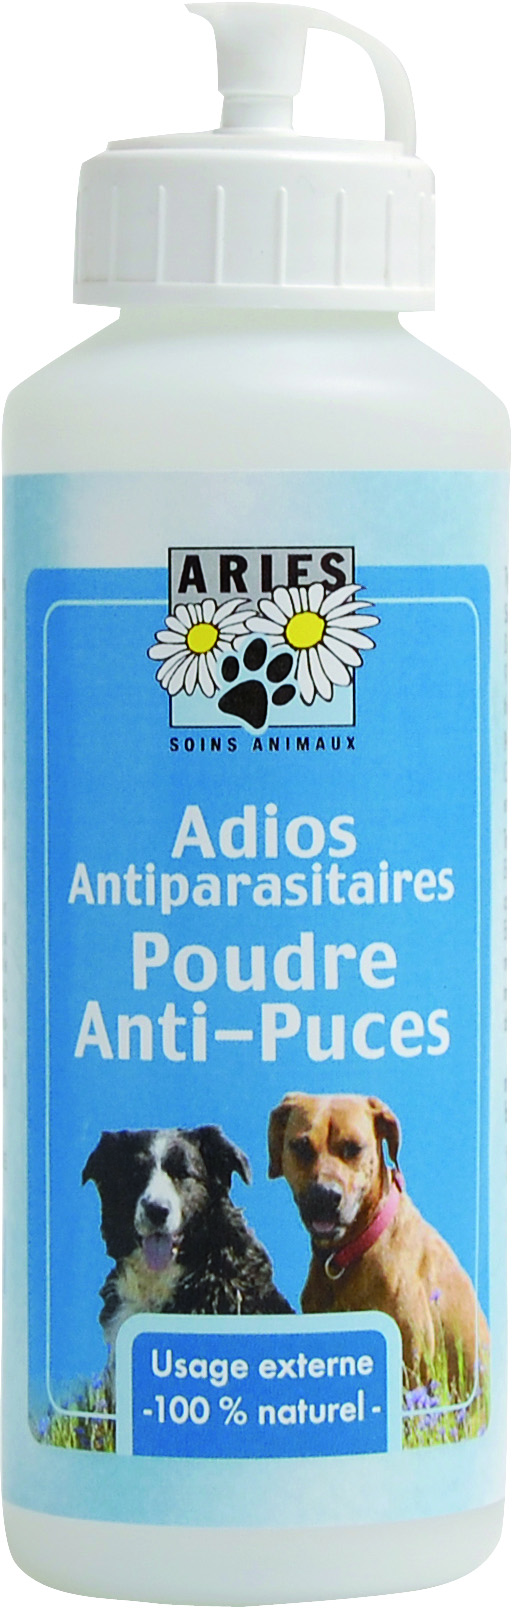 Puce animaux guide d 39 achat for Anti puce naturel maison